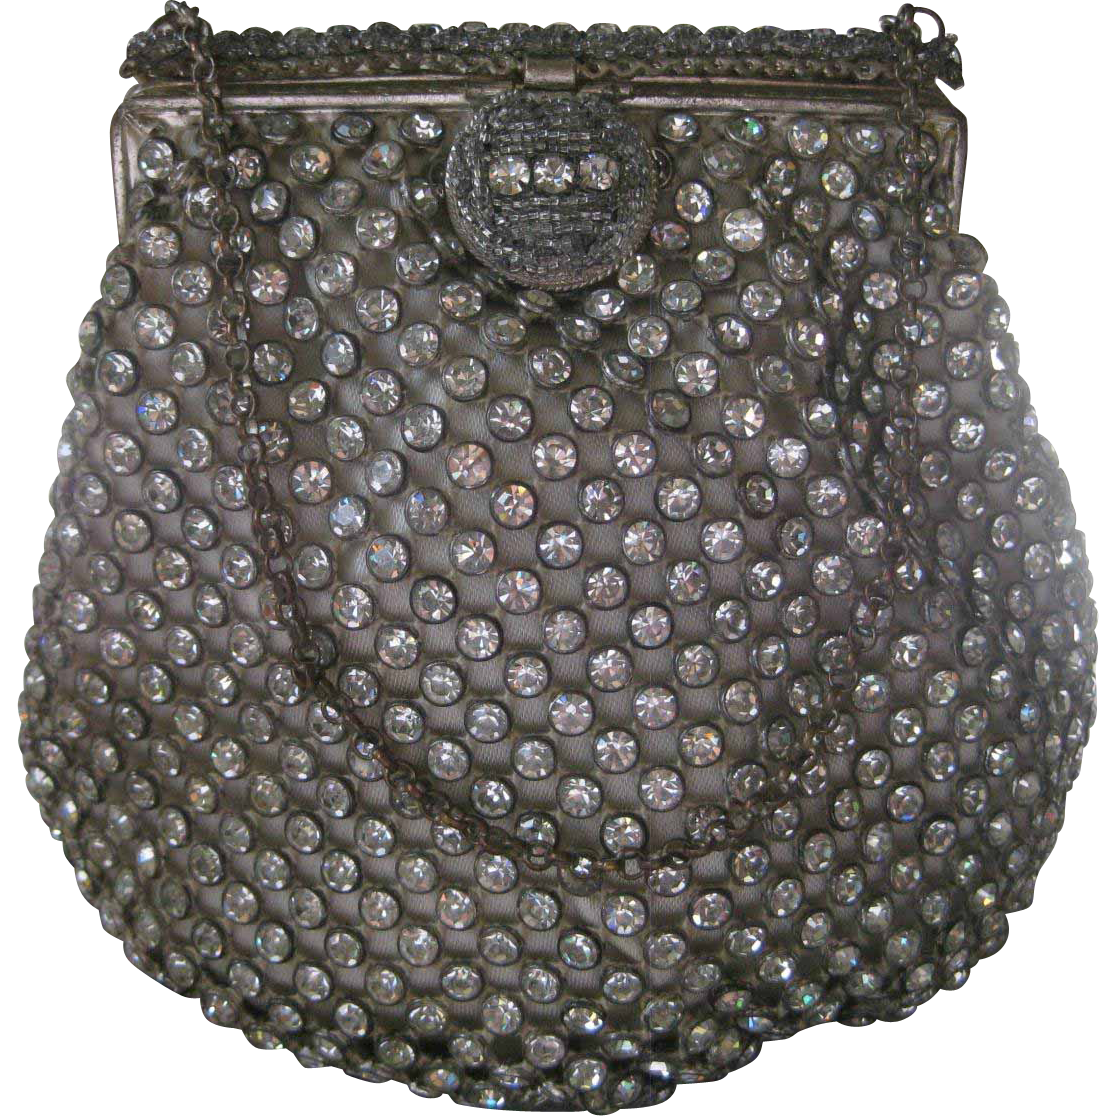 Made In France Bezeled Paste Rhinestones Over Satin Vintage Purse